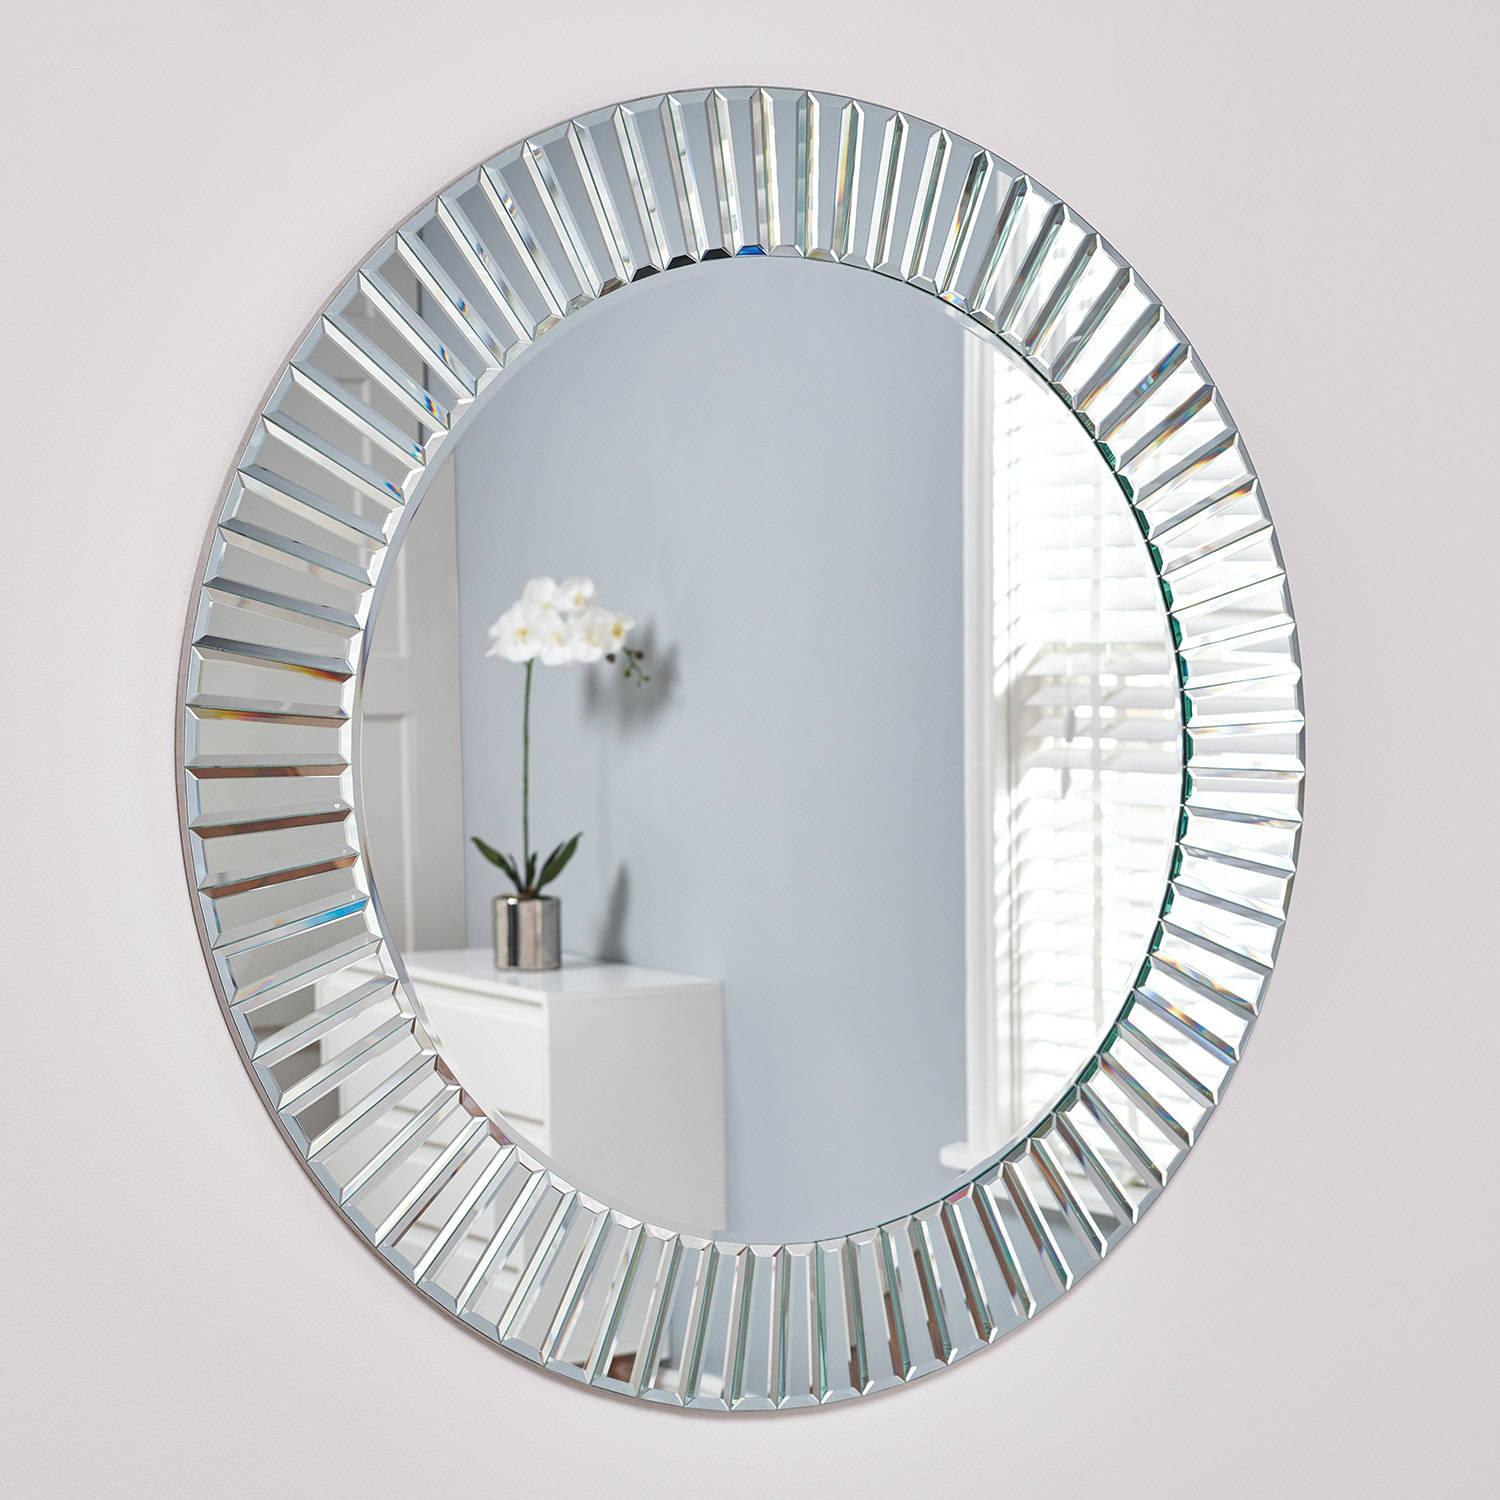 Large Glass Bevelled Wall Mirrors In Well Known Round Bevelled All Glass Mirror (View 10 of 20)